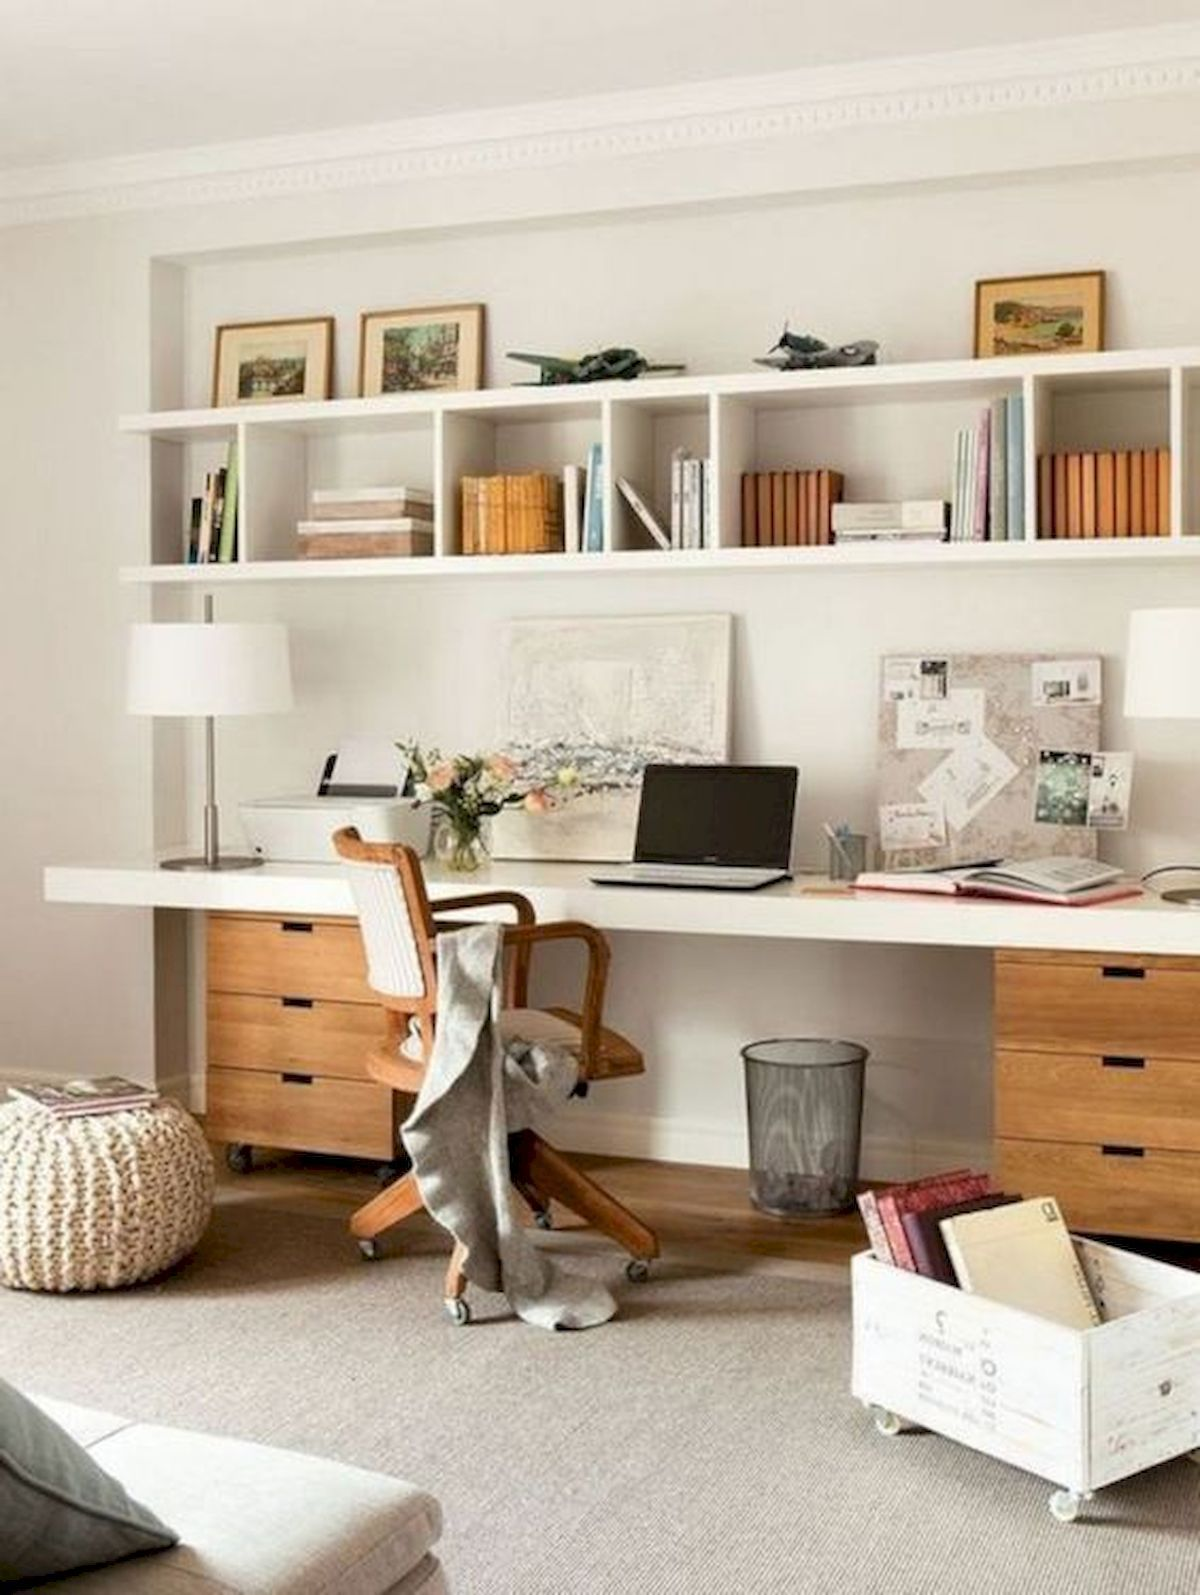 55 Incredible Diy Office Desk Design Ideas And Decor Home Office